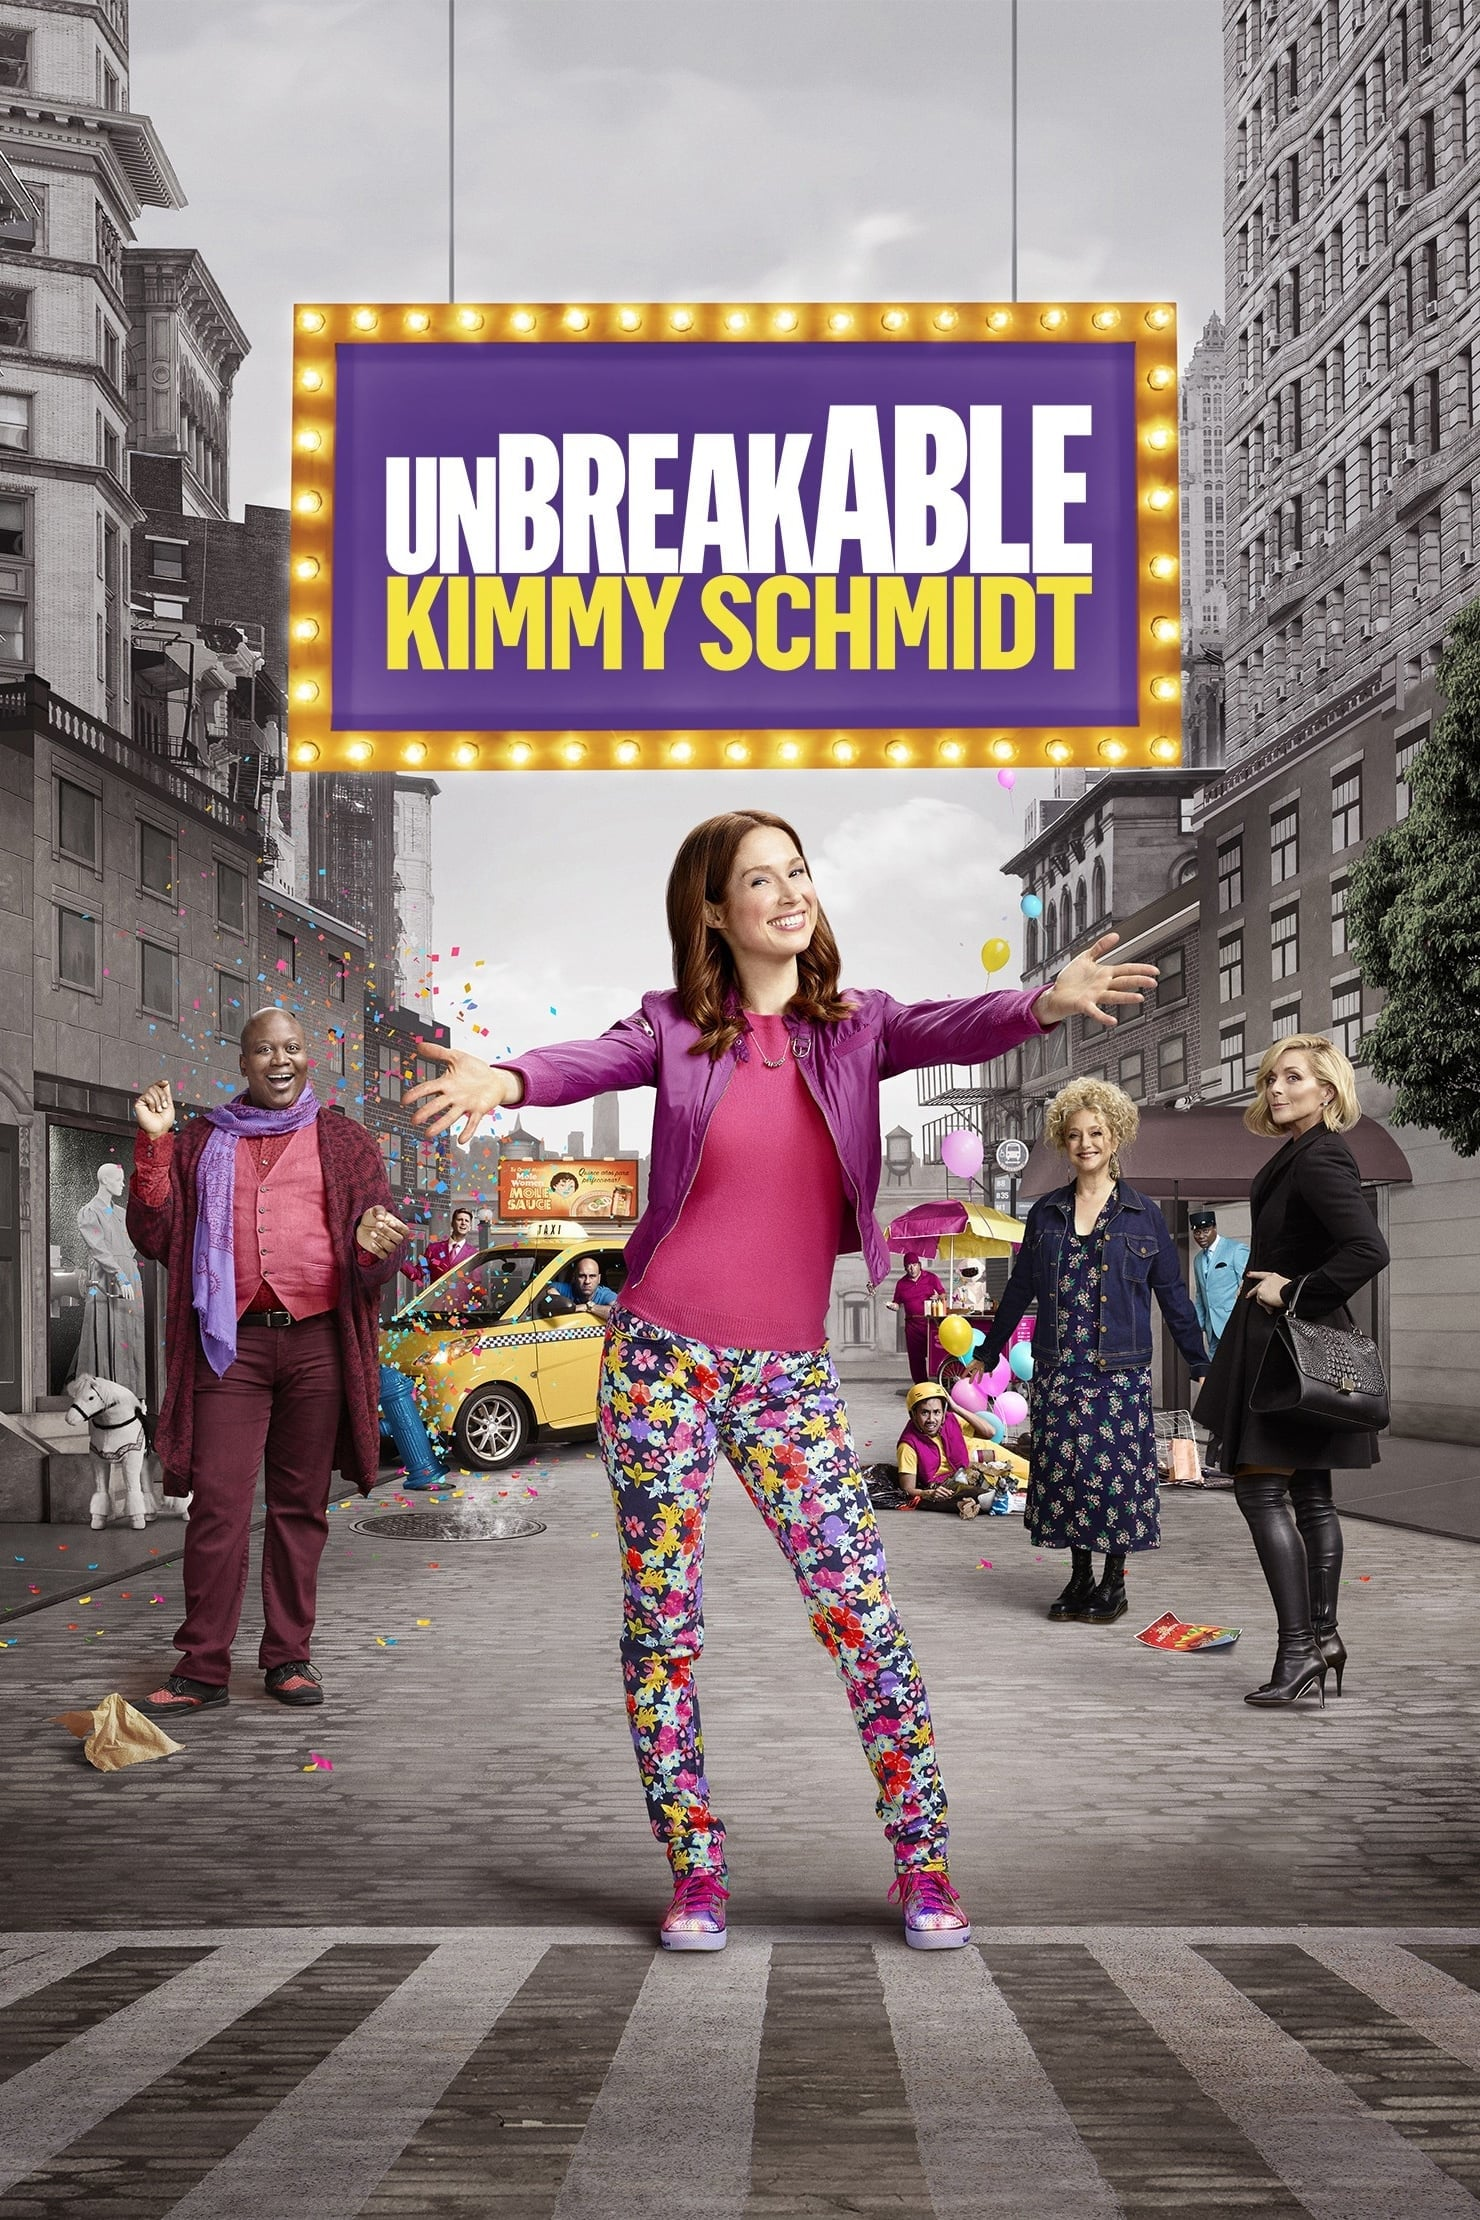 Unbreakable Kimmy Schmidt TV Shows About Fish